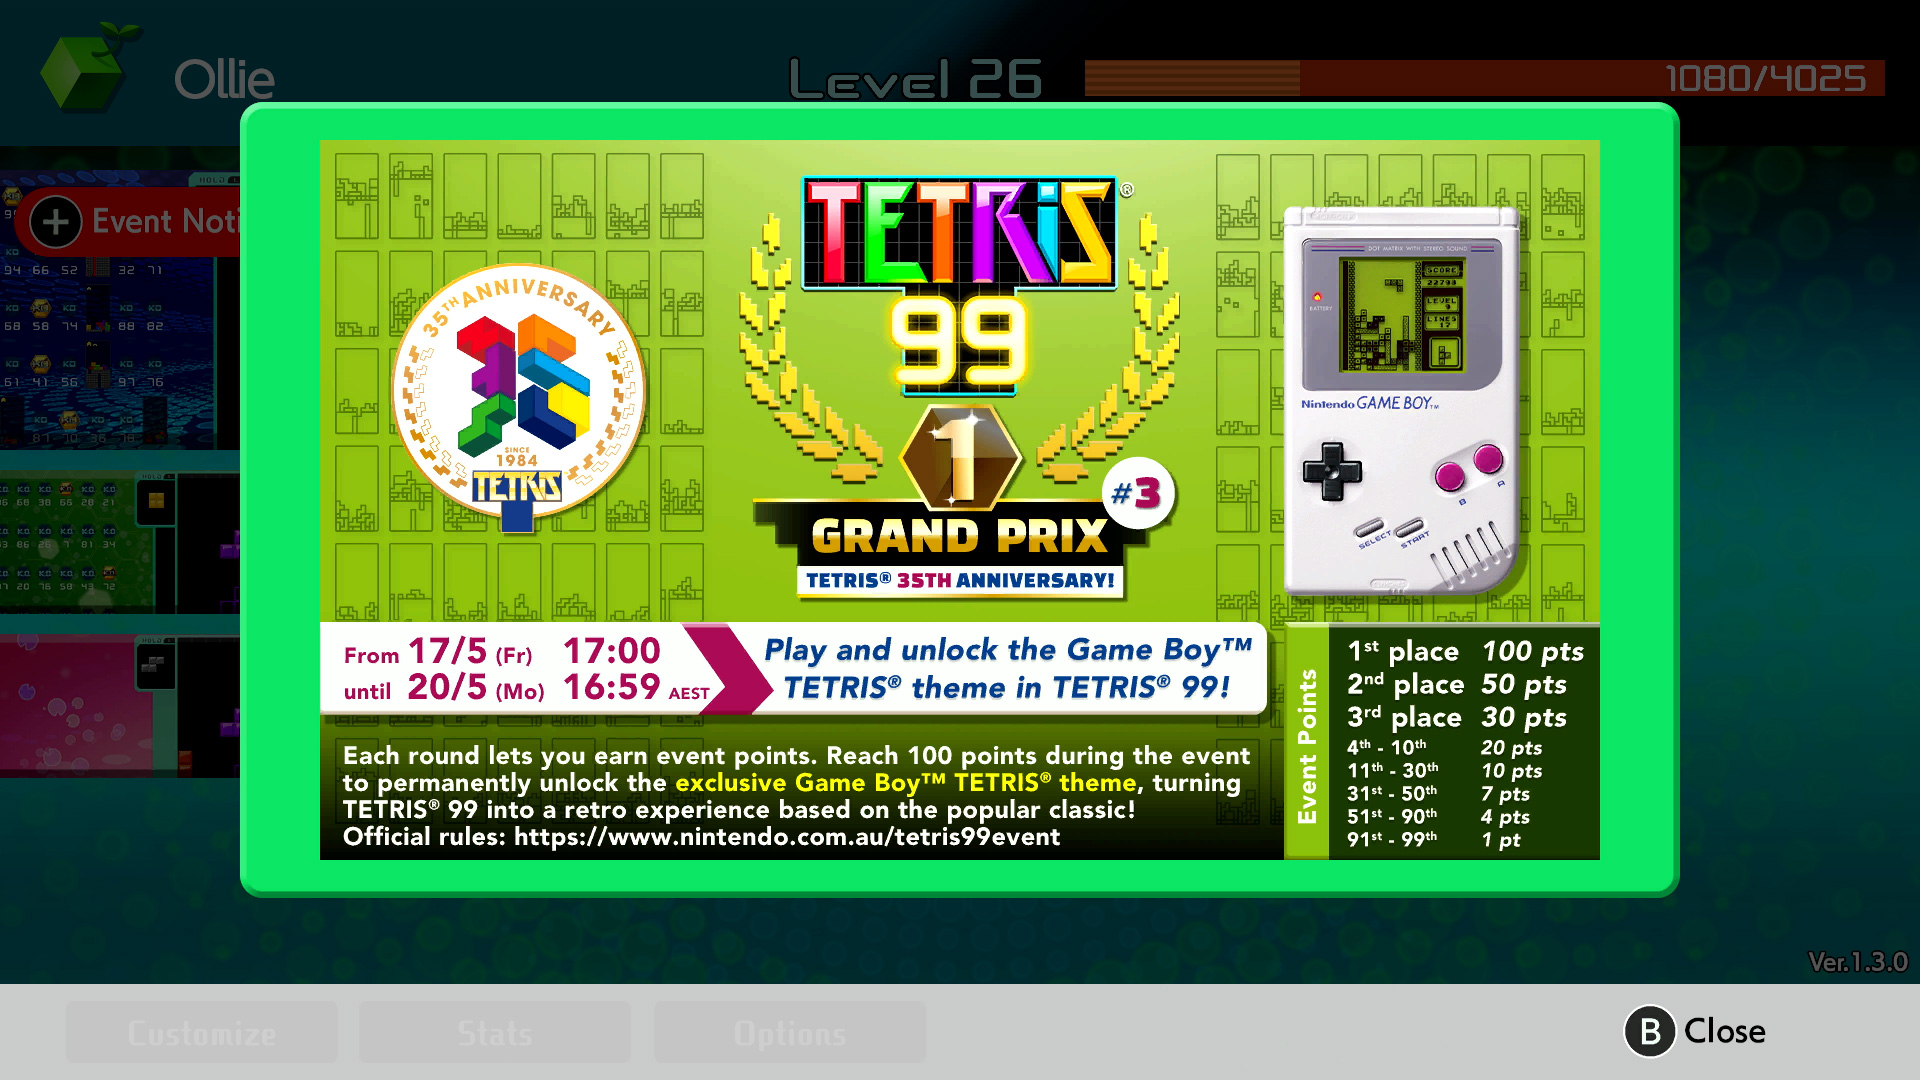 Big Block DLC announced for Tetris 99